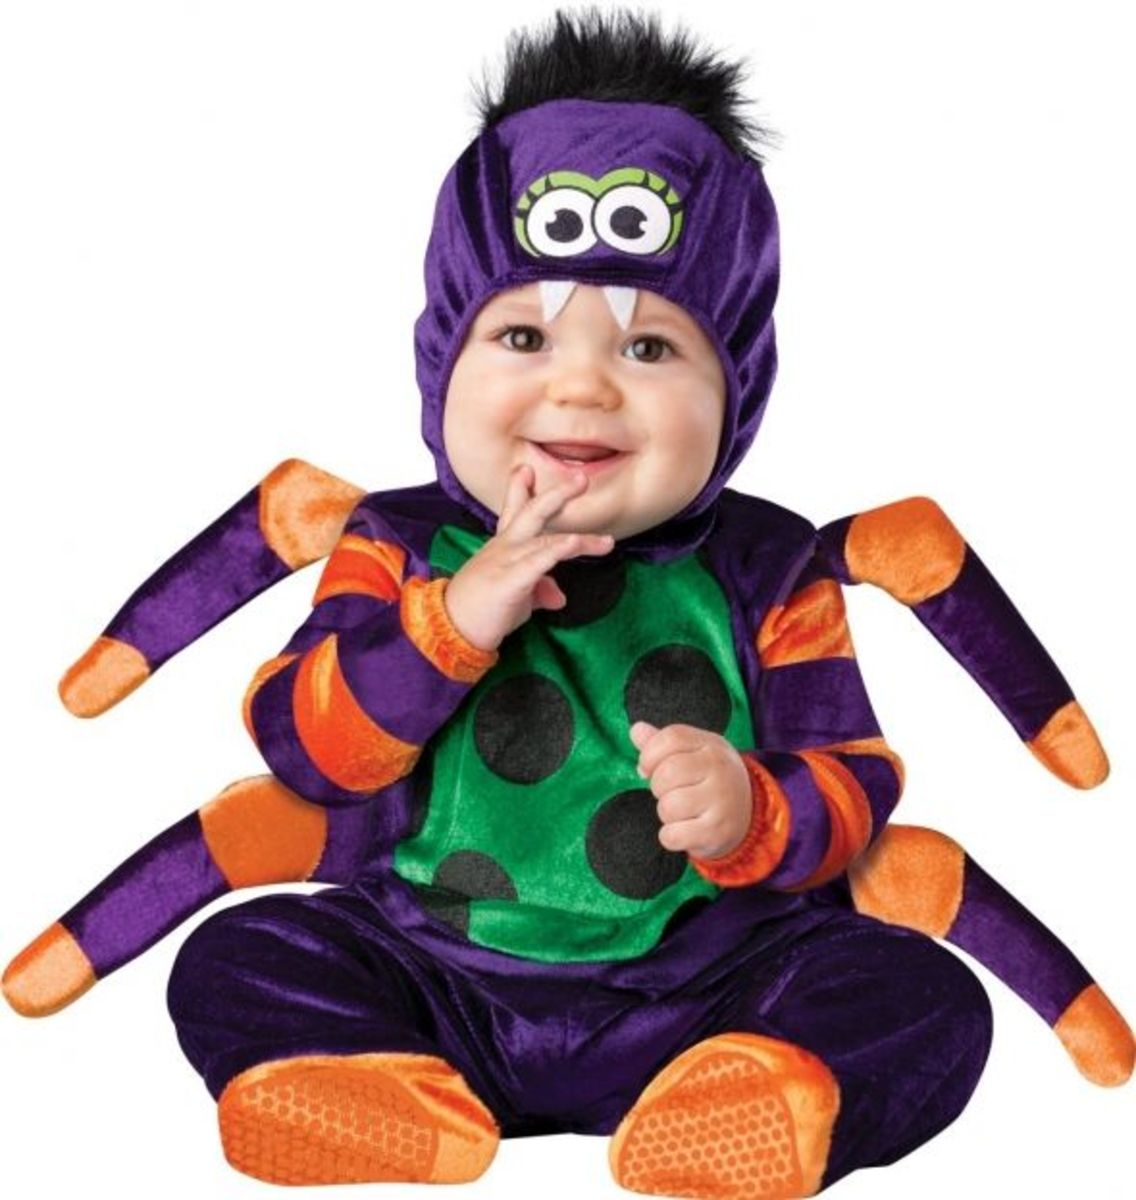 Lil Characters Unisex-baby Newborn Spider Costume